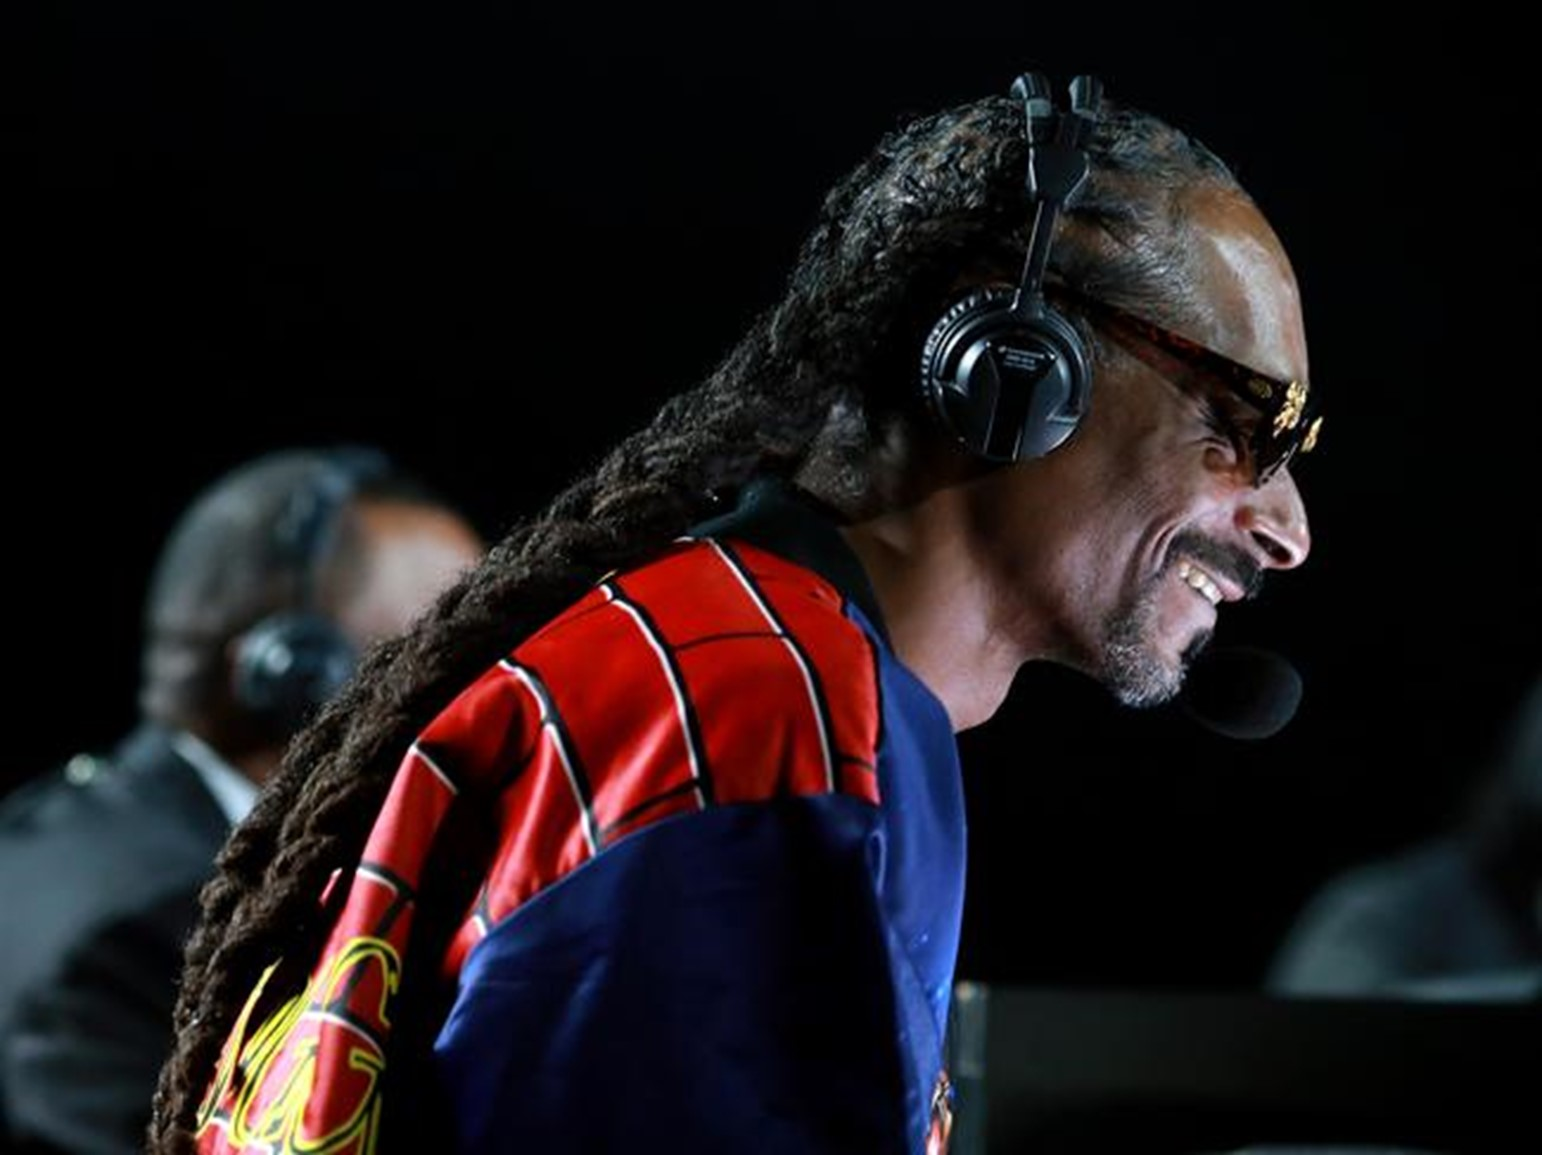 Snoop Dogg Will MC Webcamming for the Blind